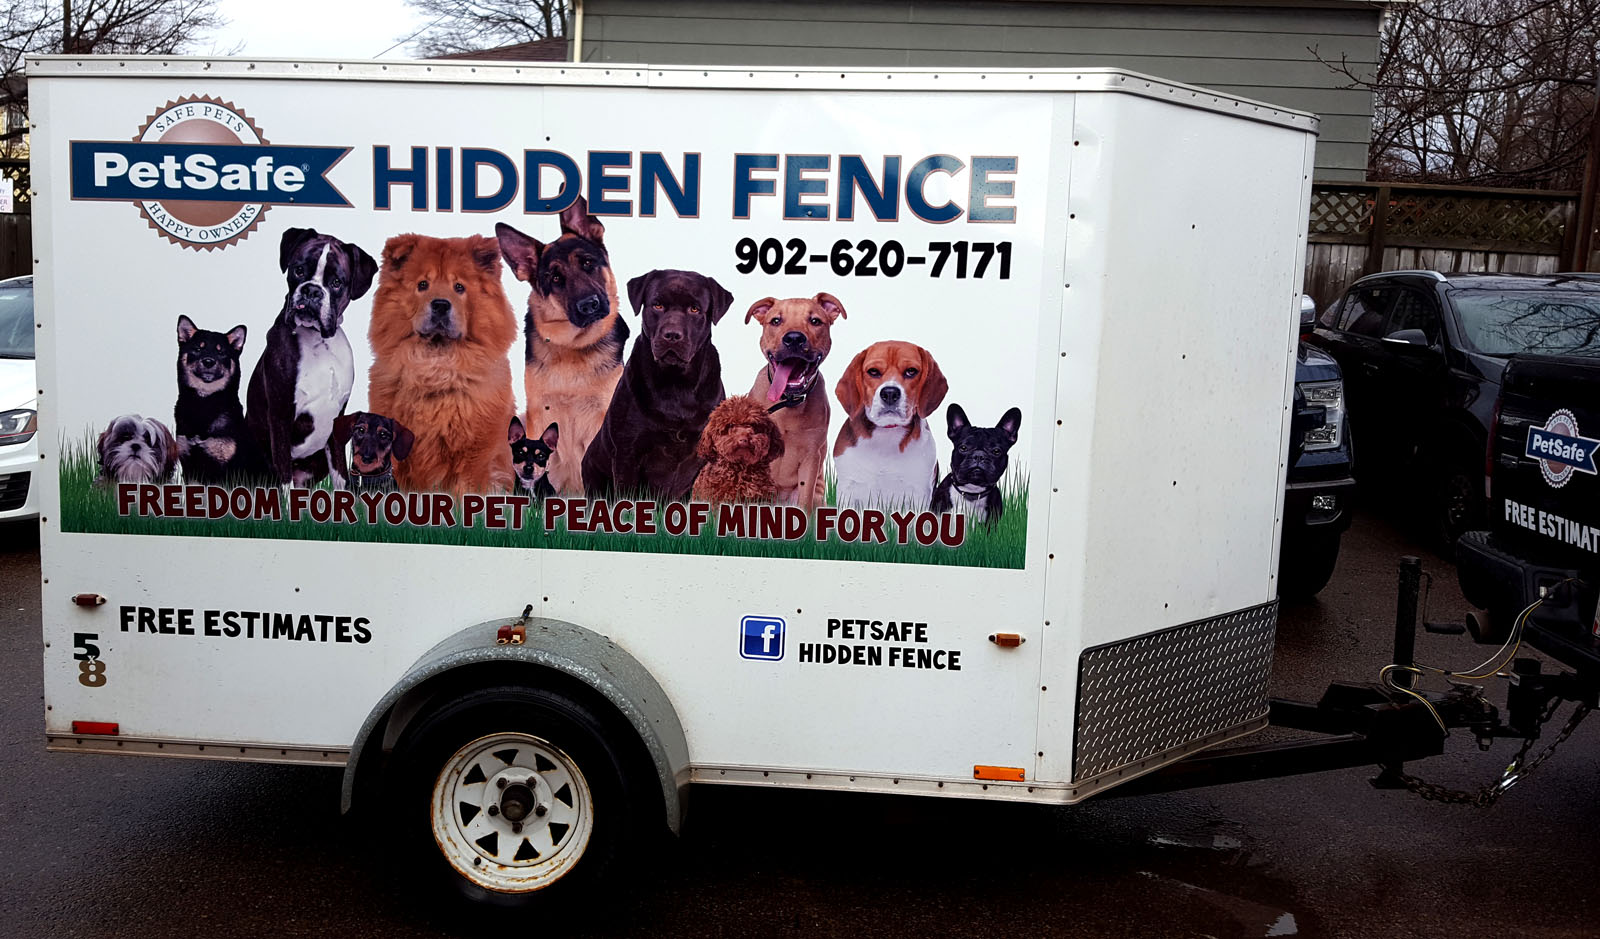 hiddenfence